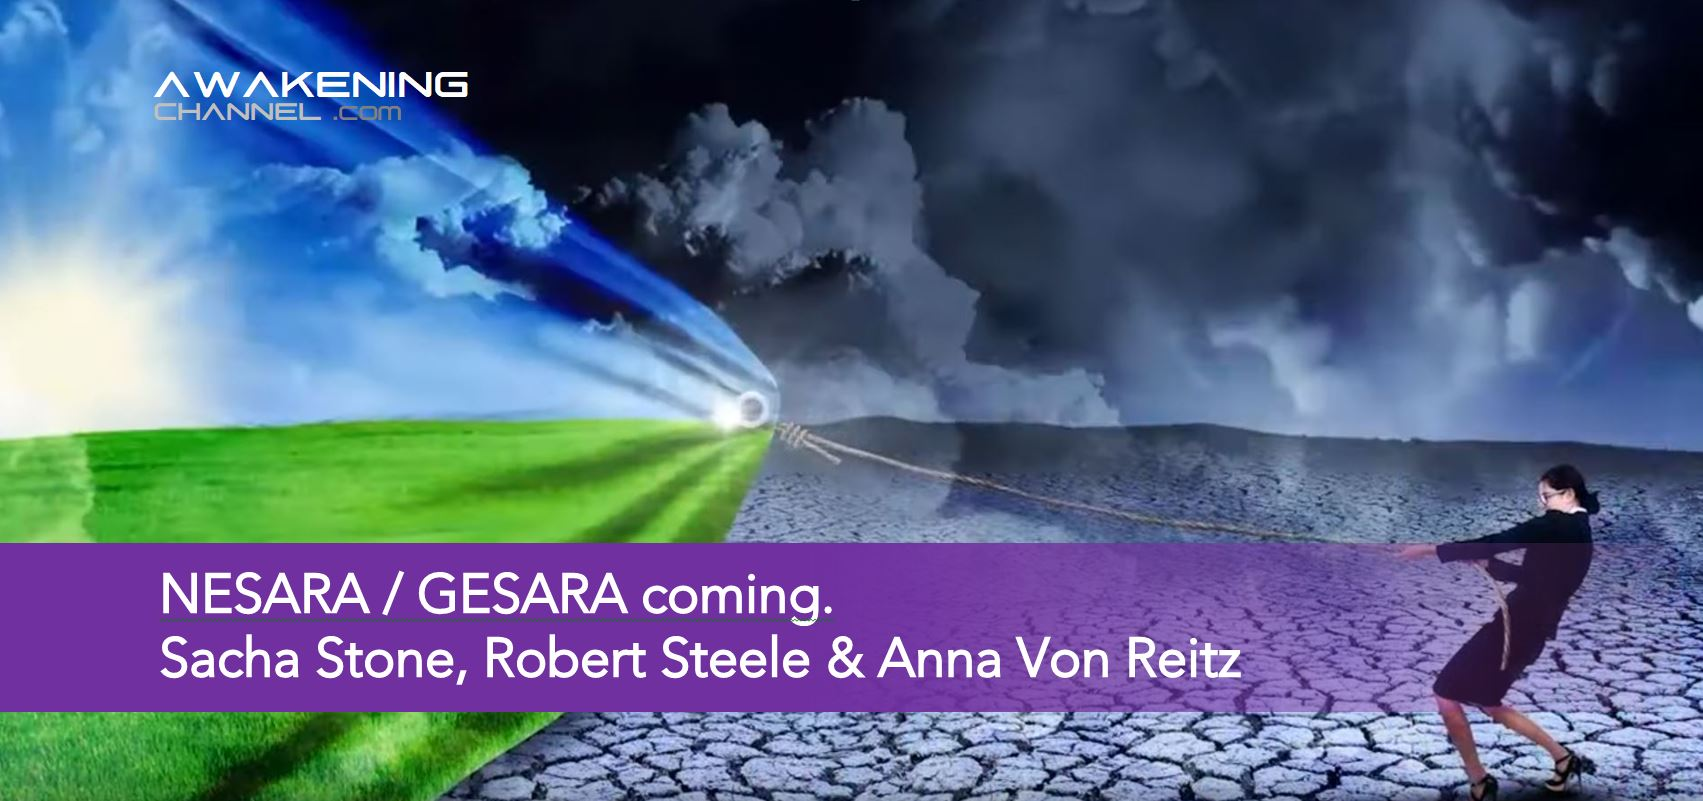 NESARA / GESARA coming. Sacha Stone, Anna Von Reitz and Robert Steele think so.